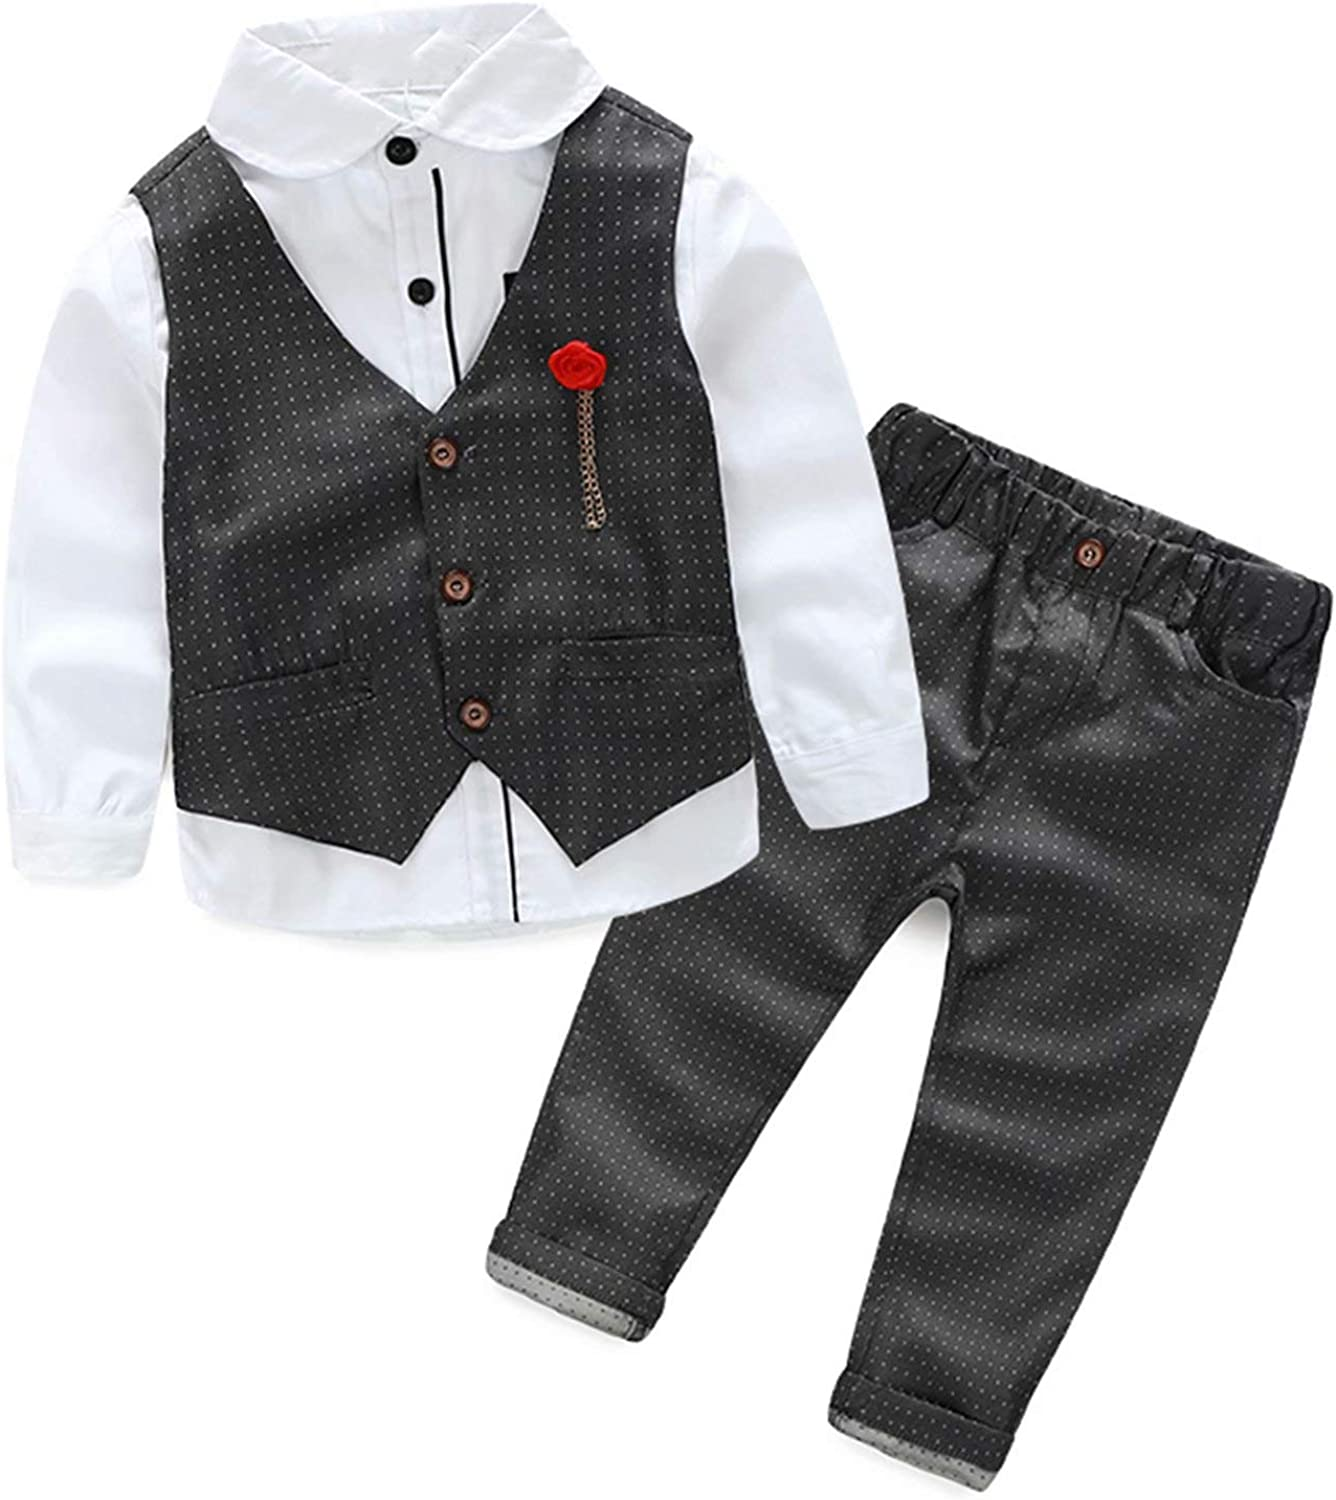 Hemopos NEW before selling Baby Boys Formal Suits Long Shirt+ Baltimore Mall Color Sleeve L Vest+